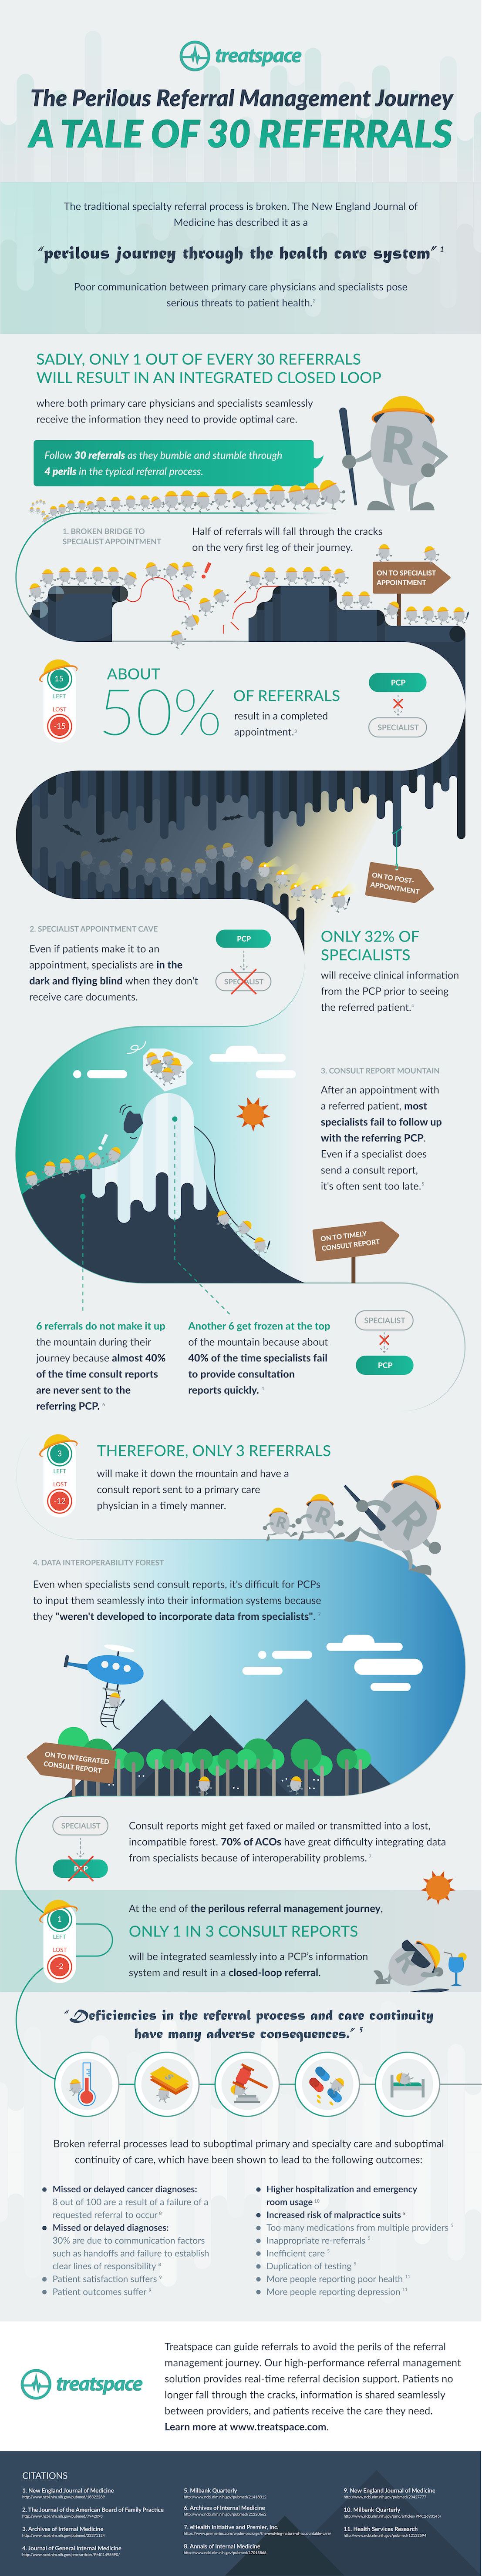 Referral-Mgmt-Infographic_Perilous-Journey.jpg